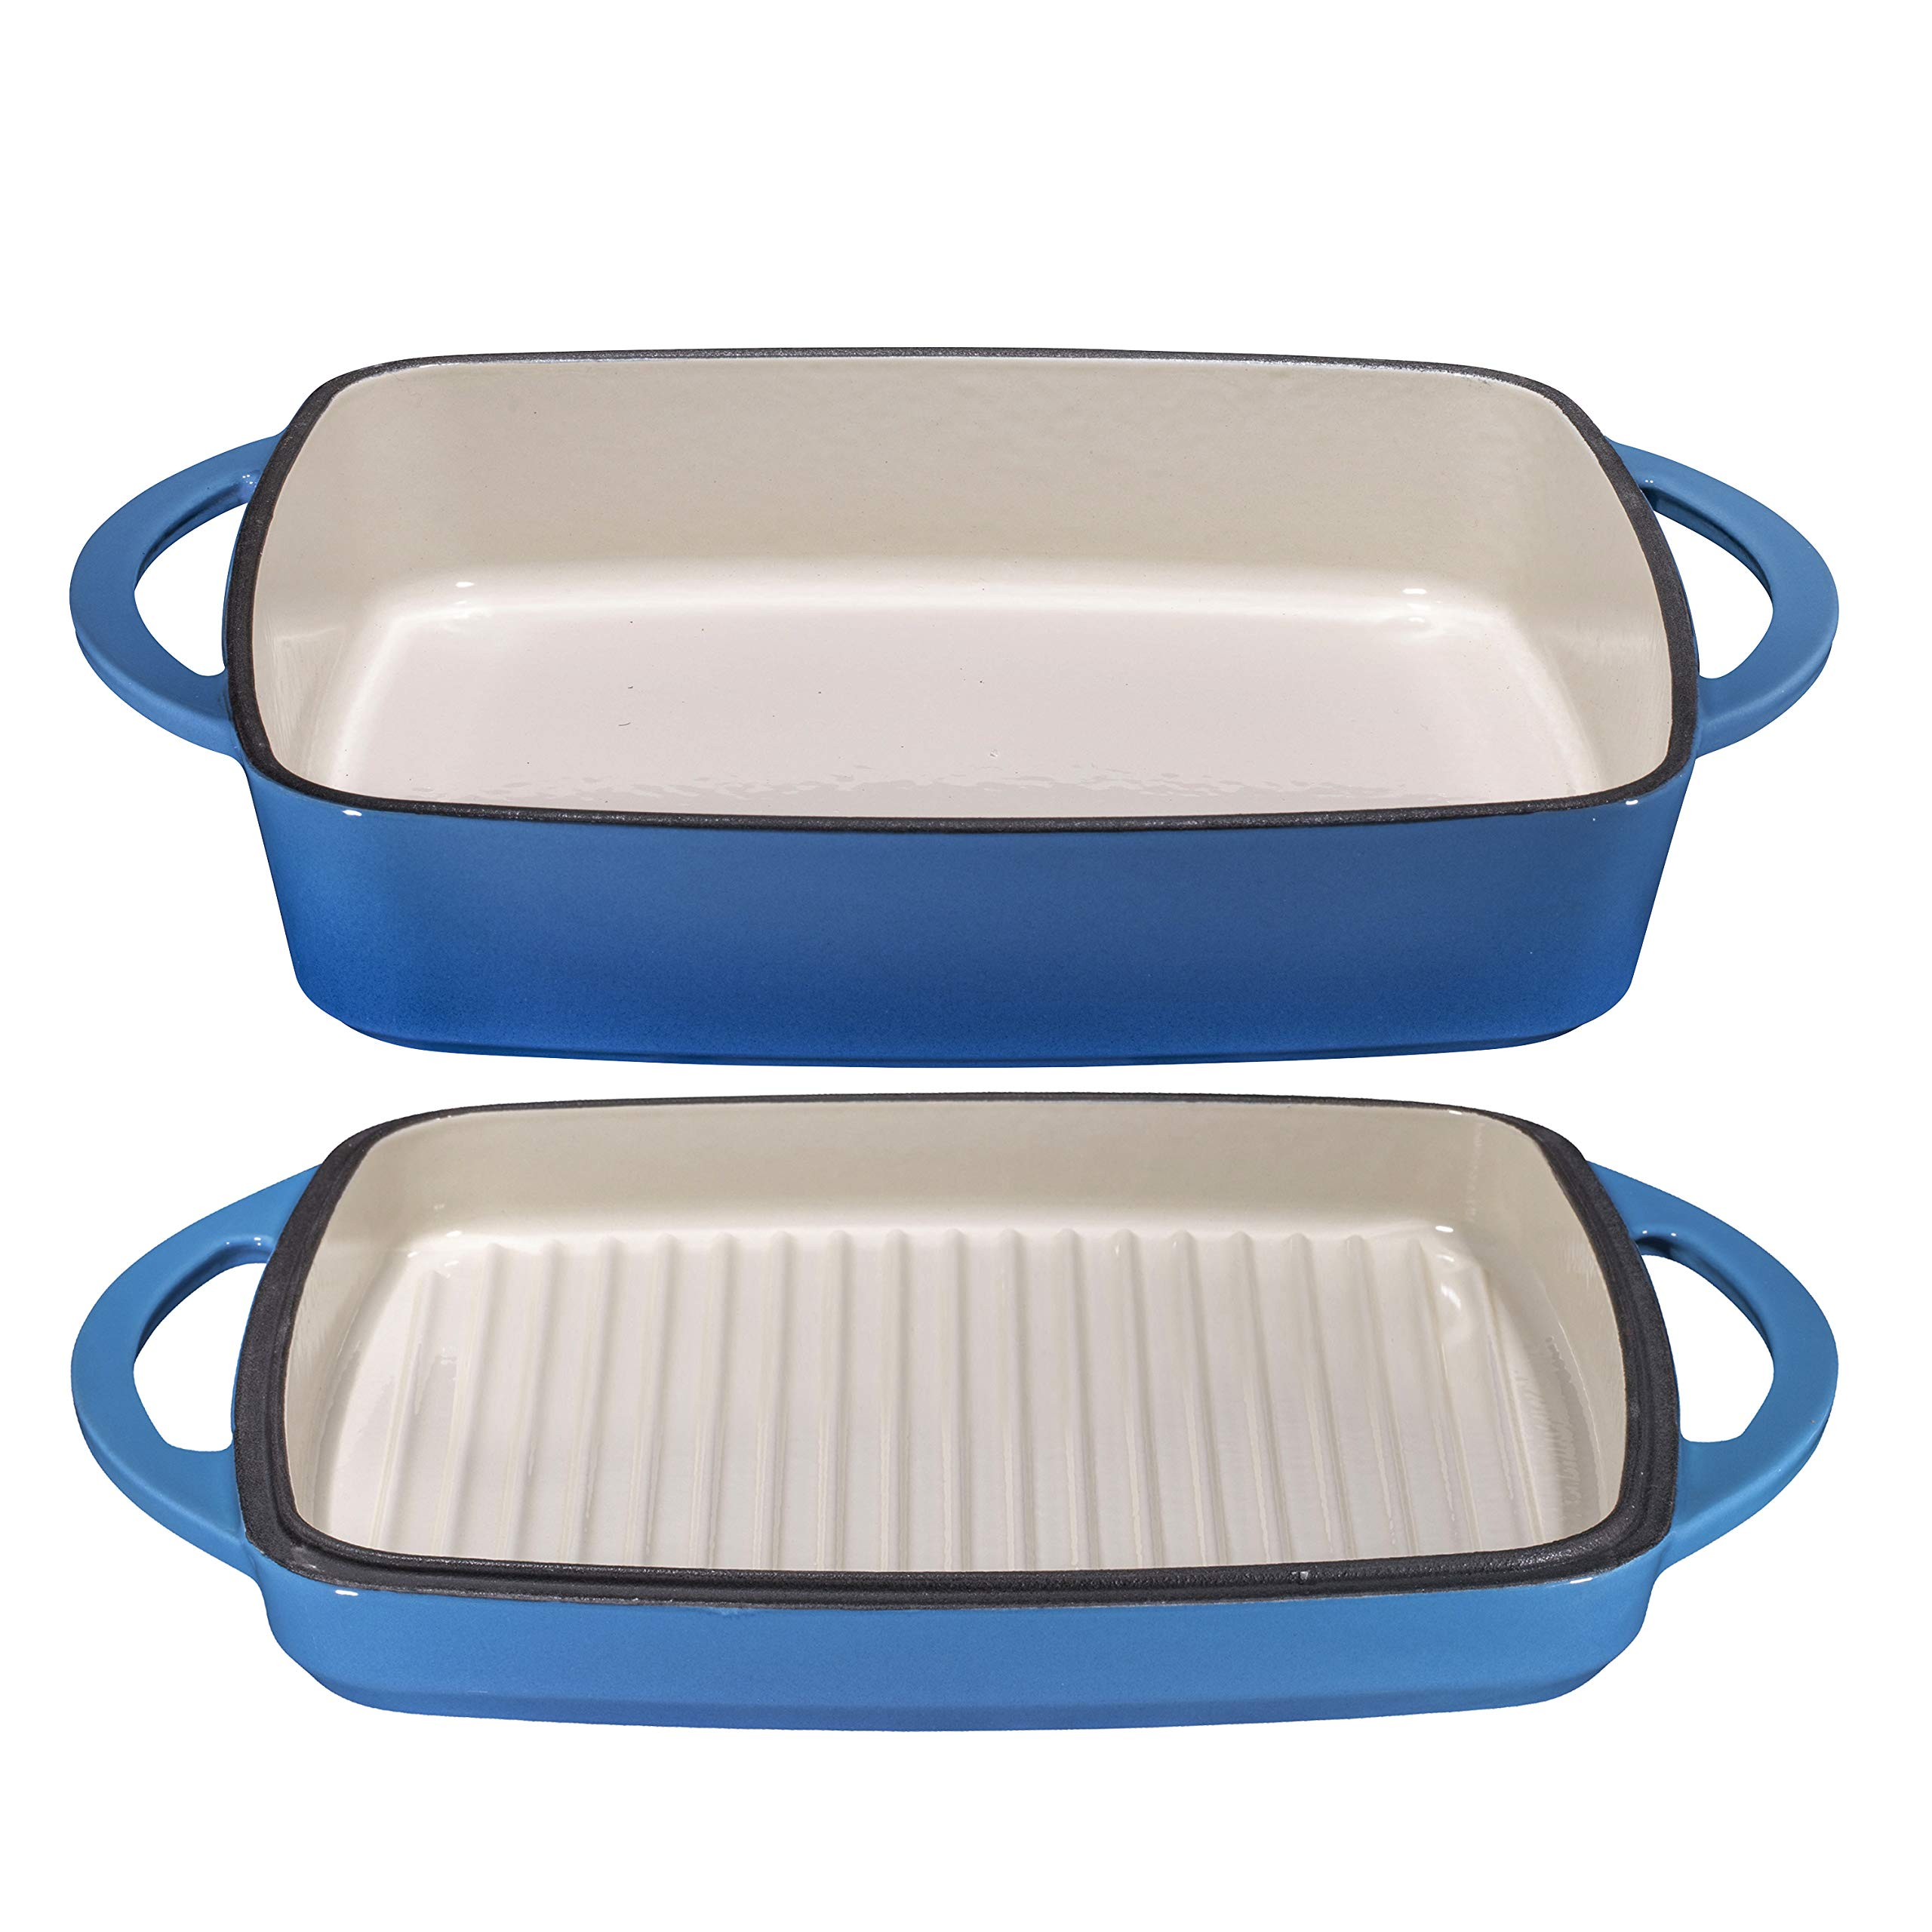 2 in 1 Enameled Cast Iron Square Casserole Baking Pan With Griddle Lid 2 in 1 Multi Baker Dish 11'' - Blue Whale by Bruntmor (Image #5)